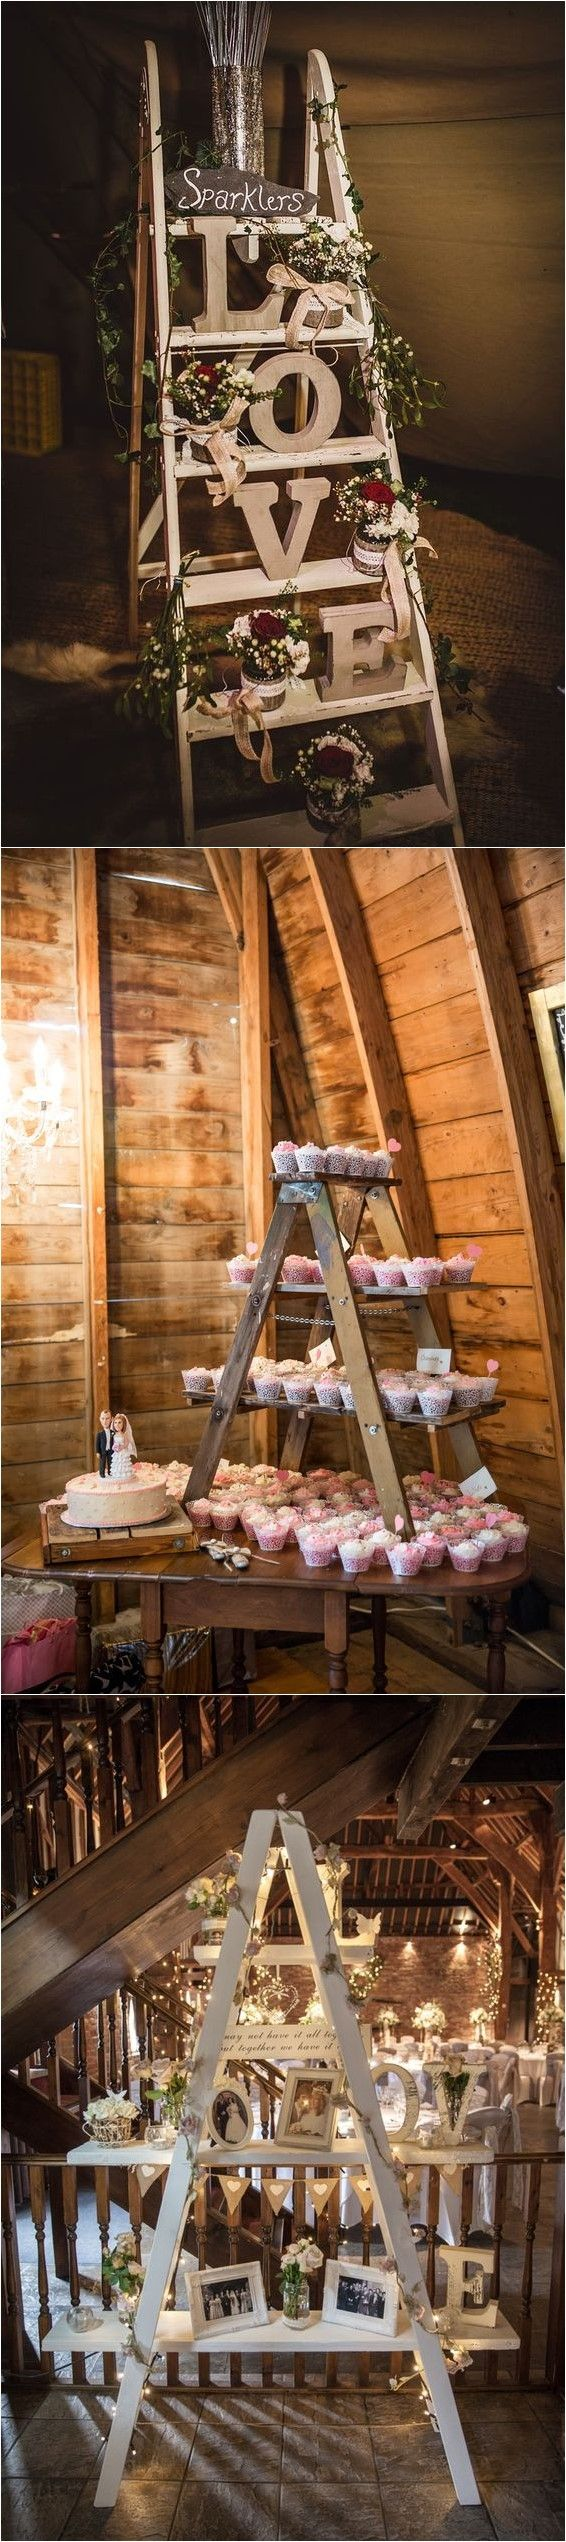 Wedding decoration ideas in the house   Rustic Country Wedding Decoration Ideas with Ladders  new house